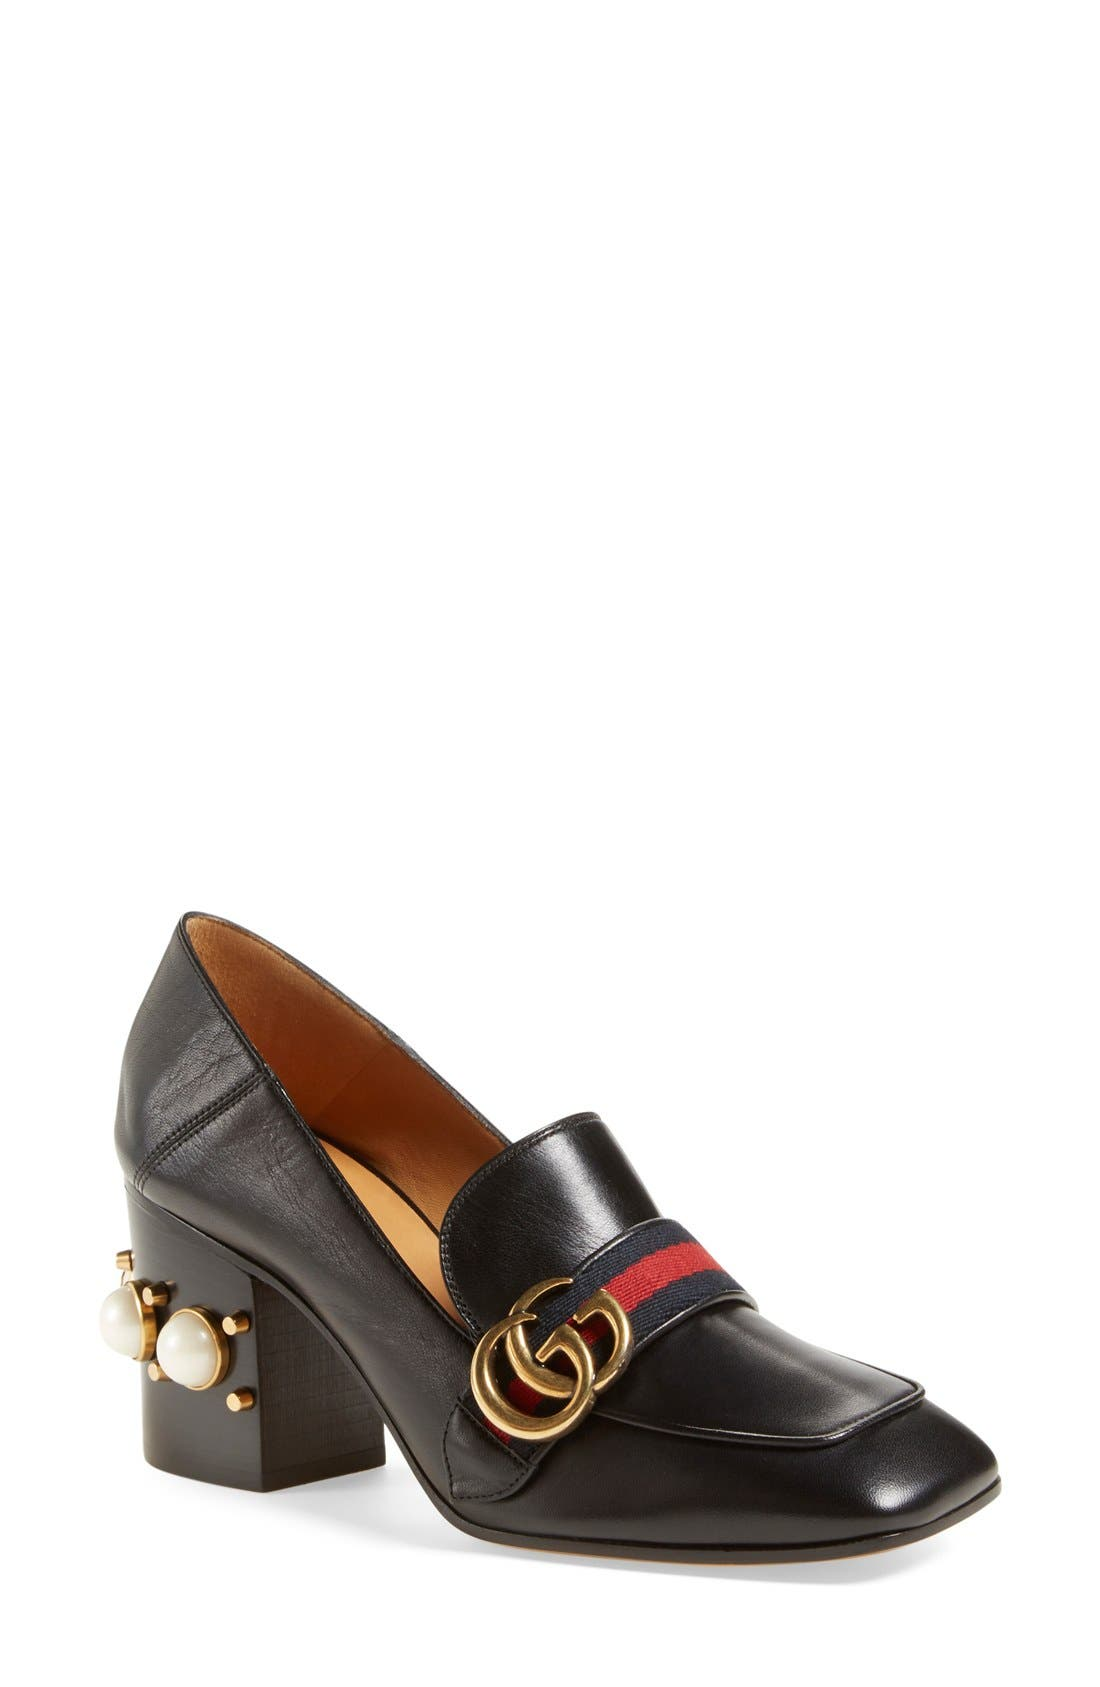 Alternate Image 1 Selected - Gucci 'Peyton' Square Toe Loafer Pump (Women)